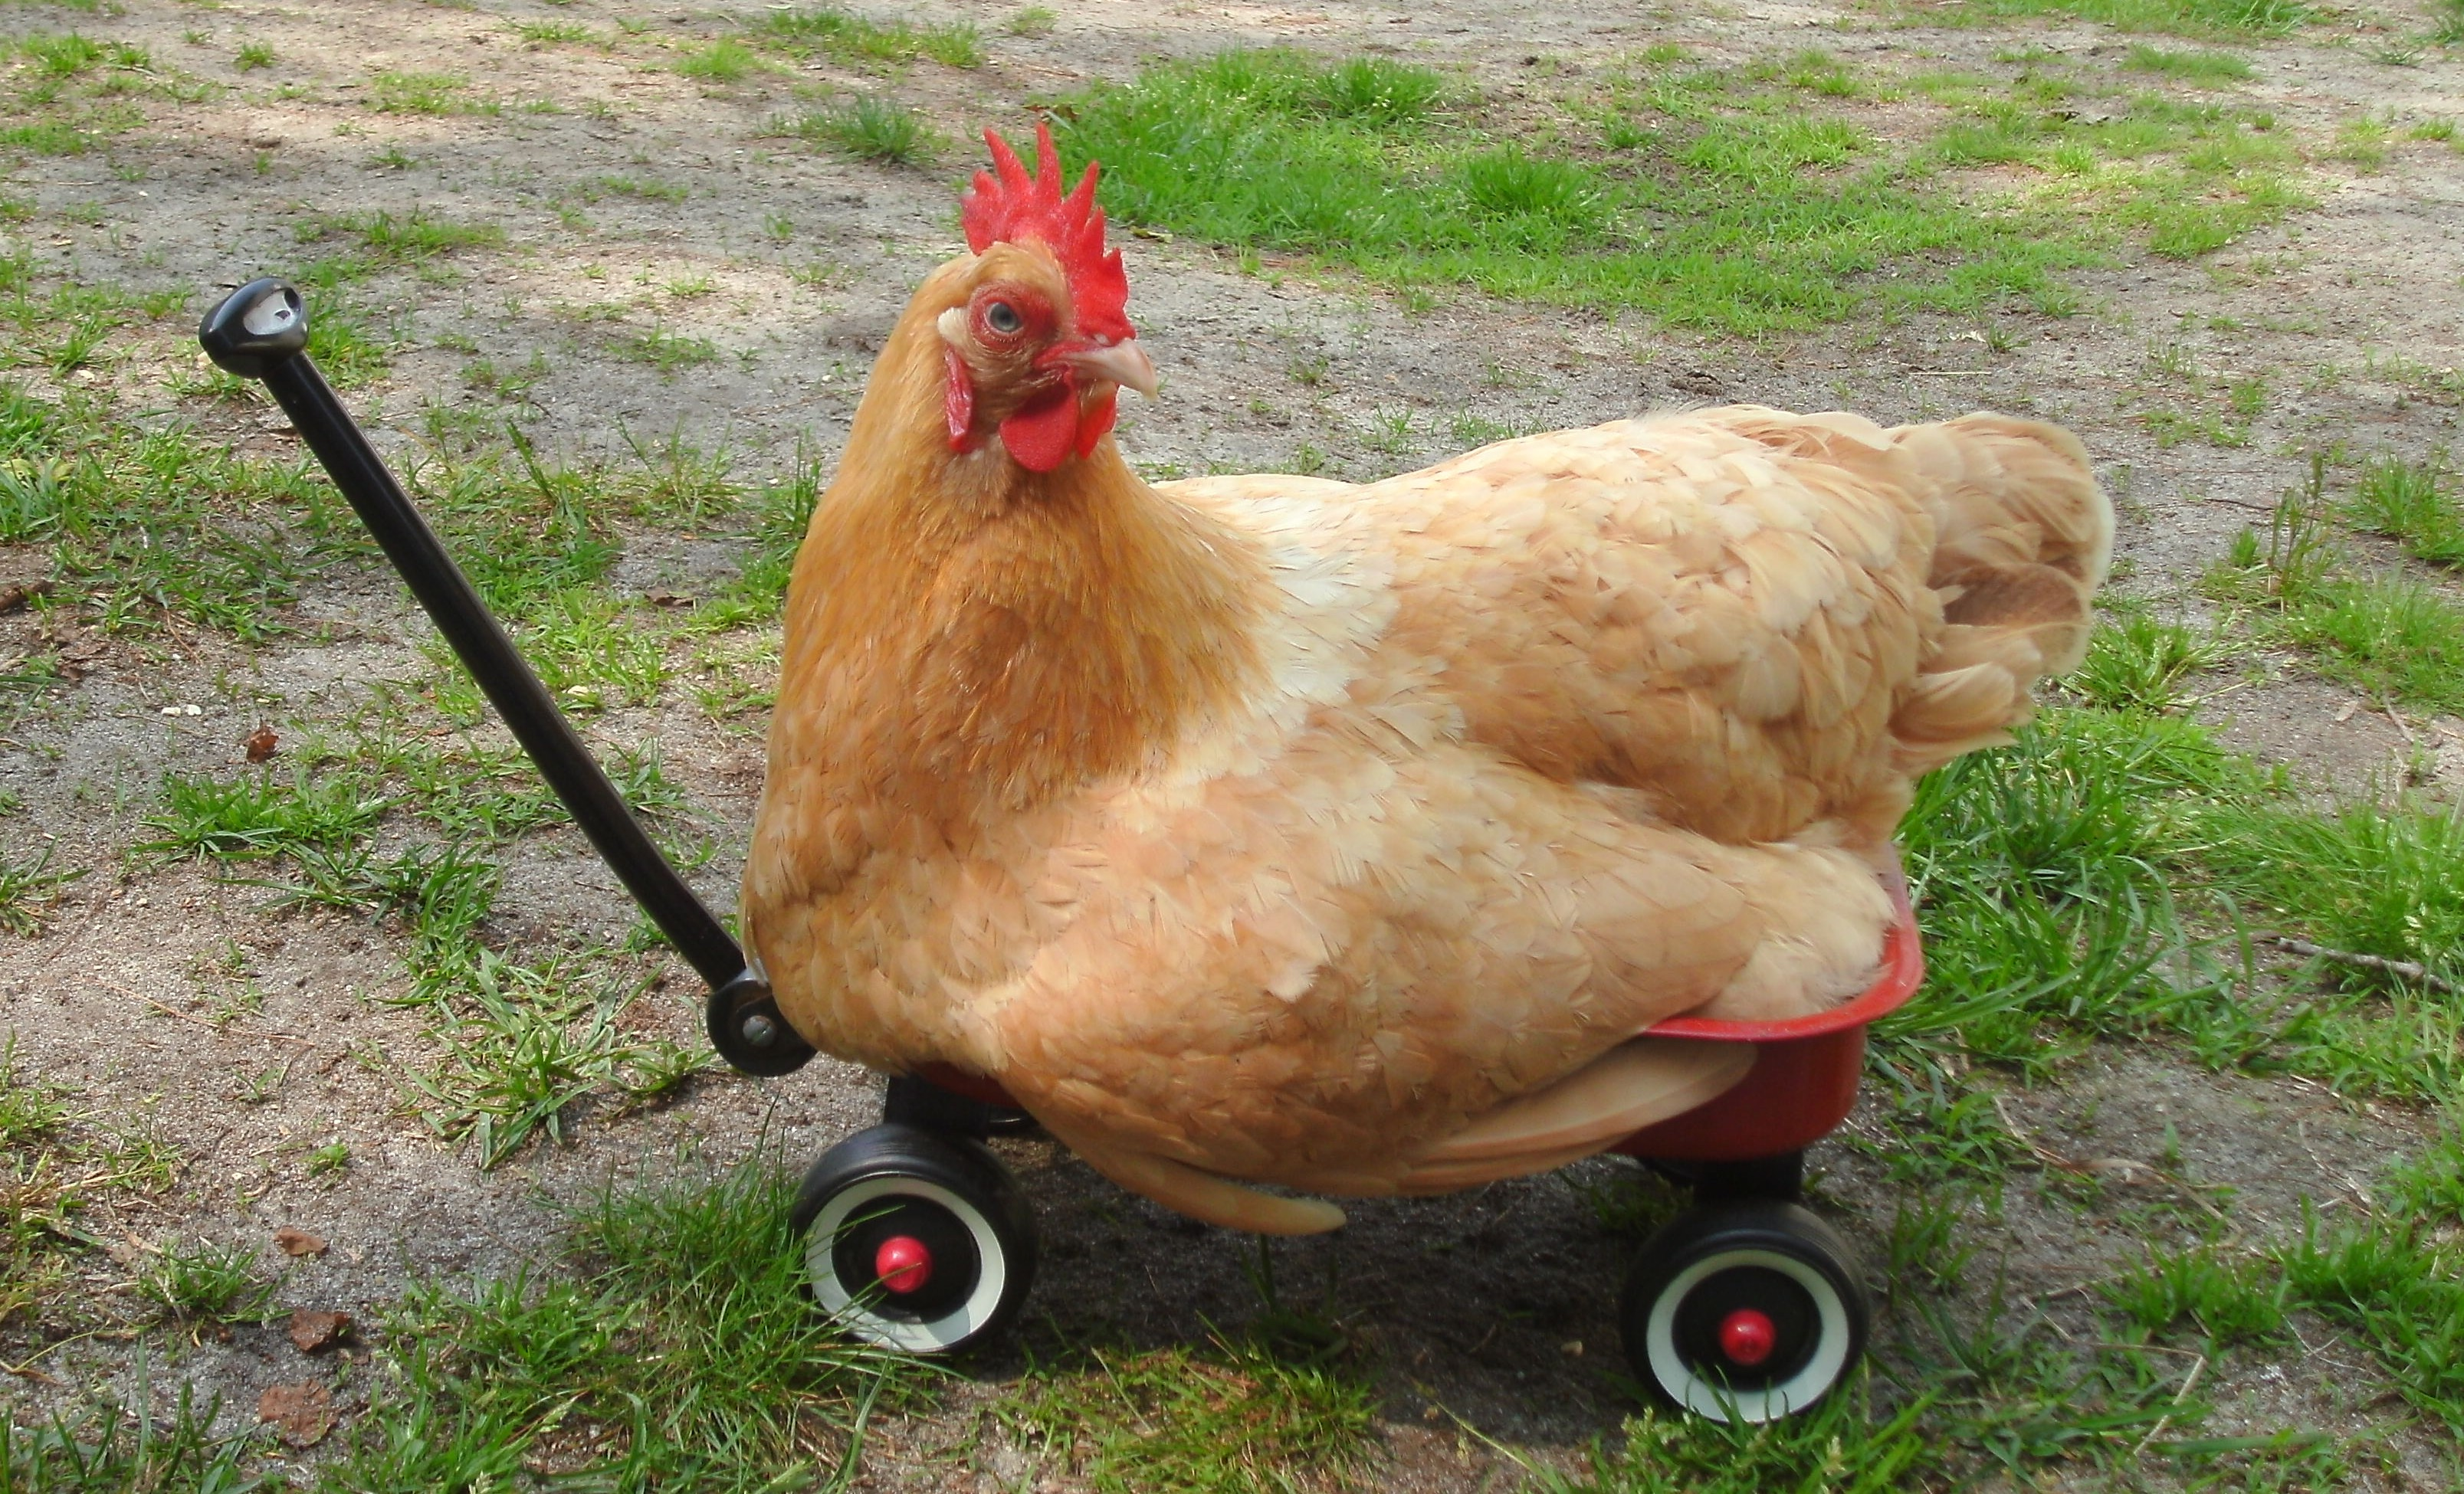 Chicken Having a Ride in a Toy Truck